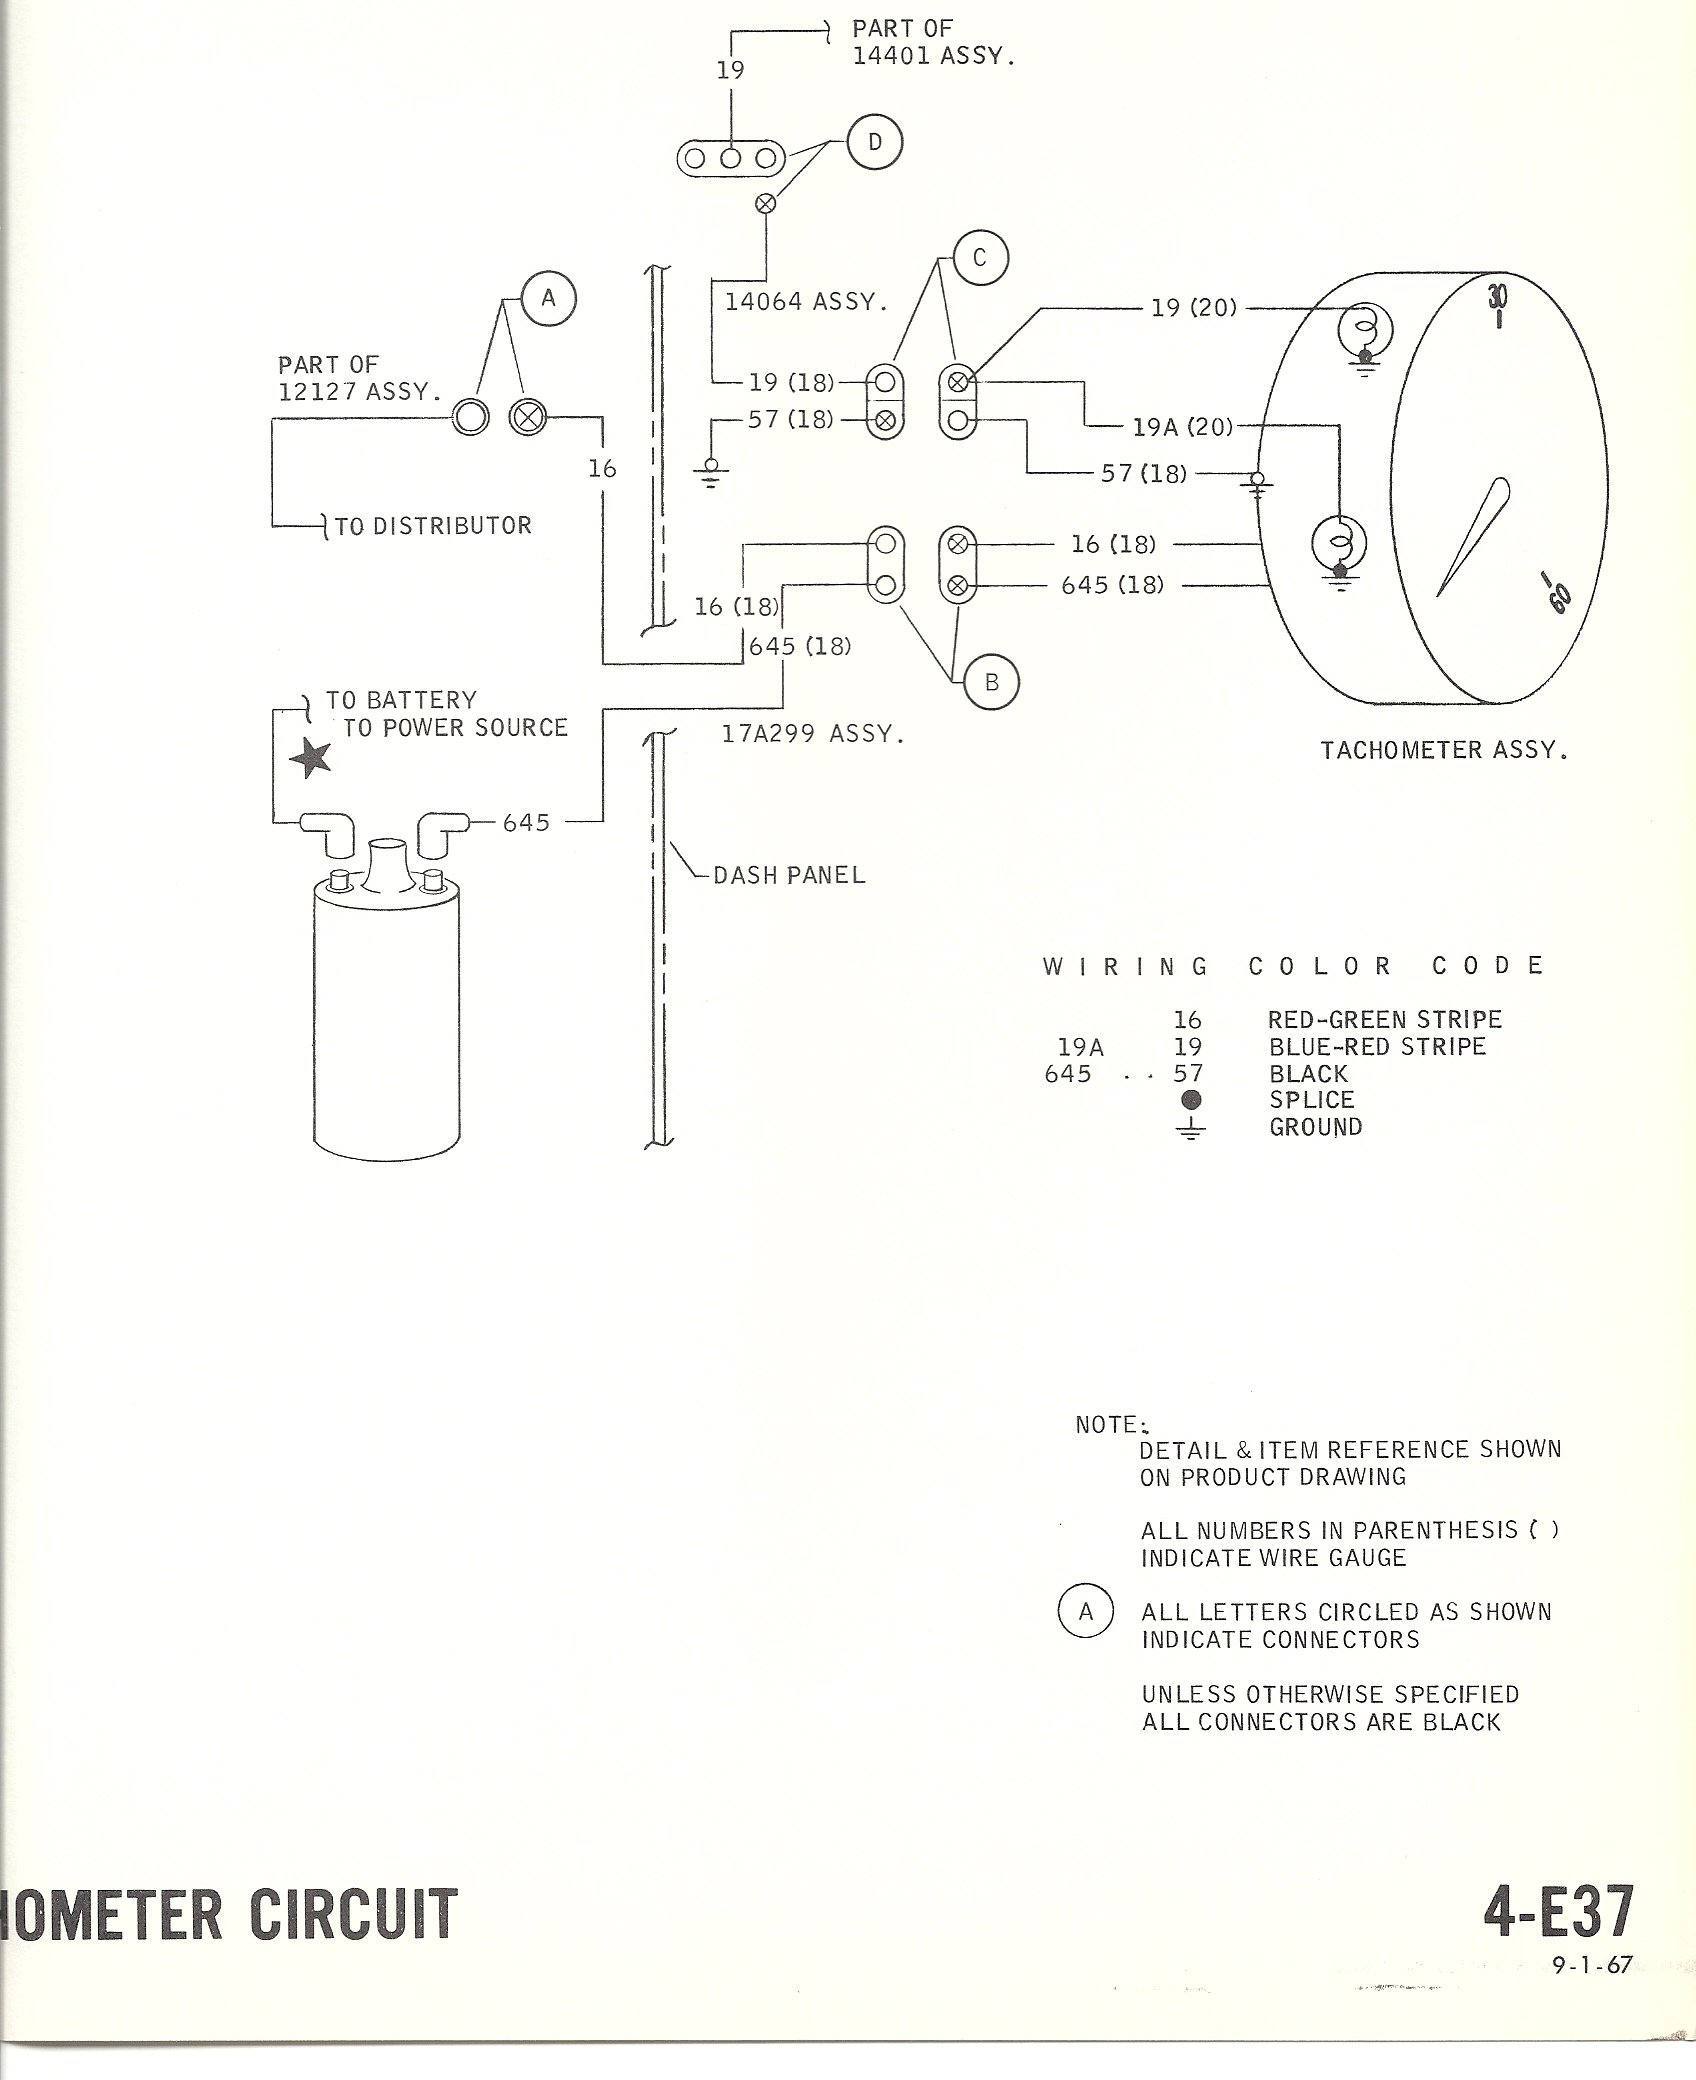 89255d1264897998 1968 mustang wiring diagrams tach please help tach wiring diagram tachometer wiring diagram smiths tachometer wiring diagram \u2022 free 86 Mustang Wiring Diagram at panicattacktreatment.co